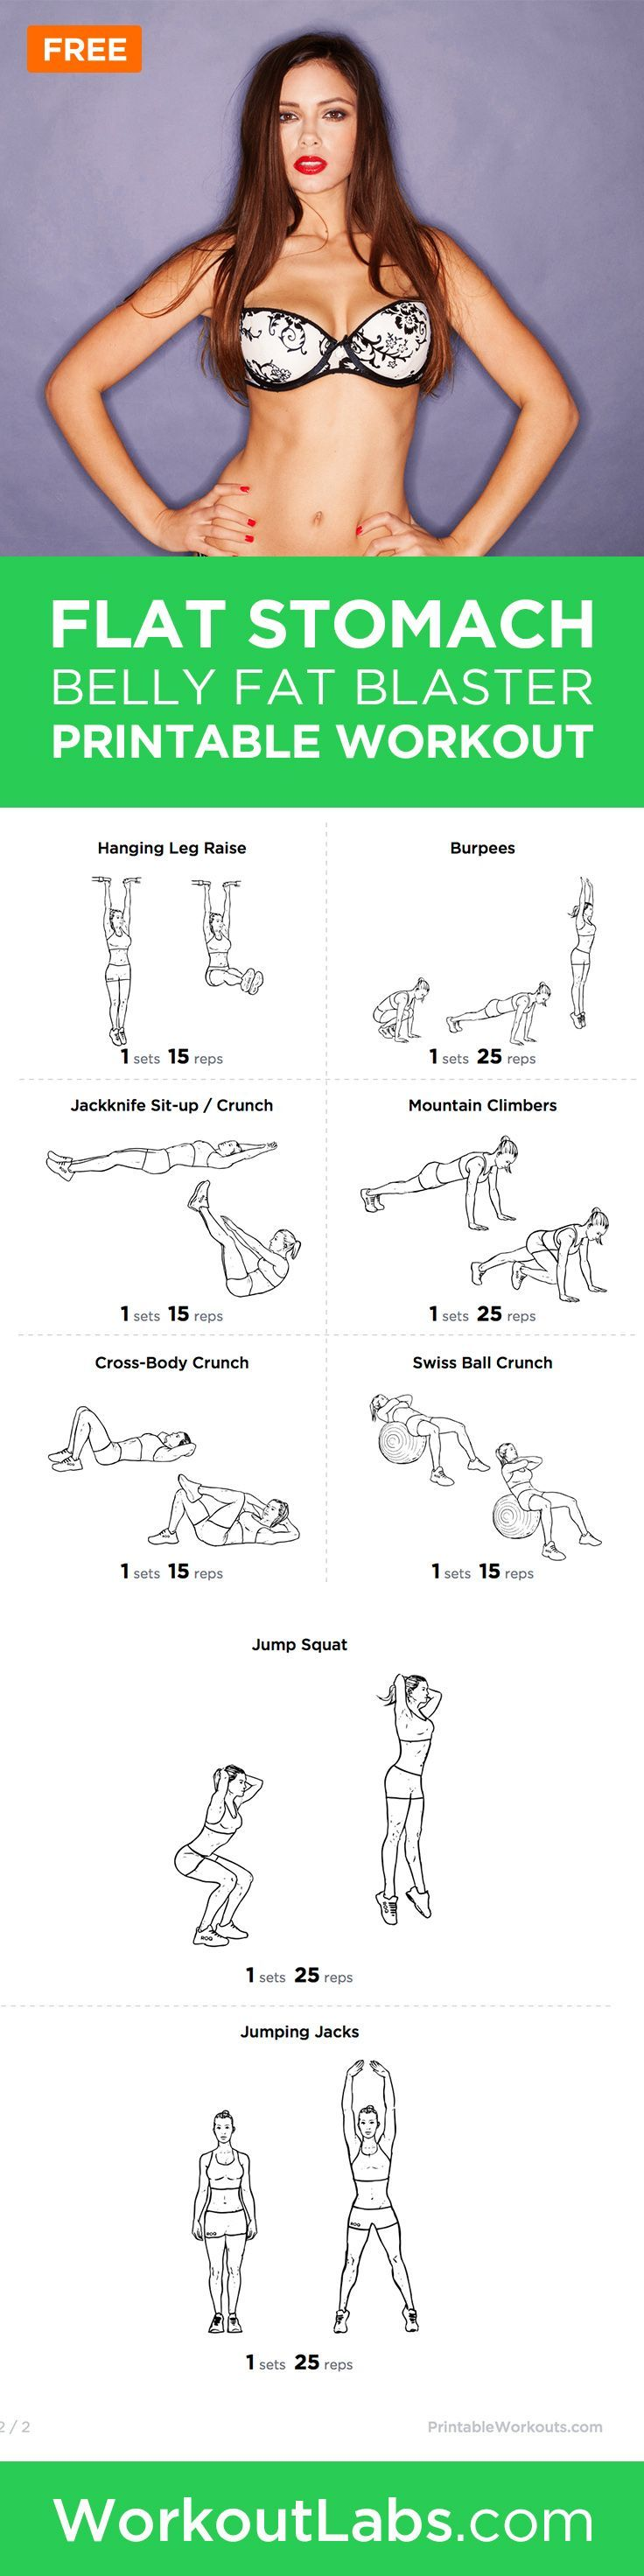 How to lose weight off your belly and bum image 7